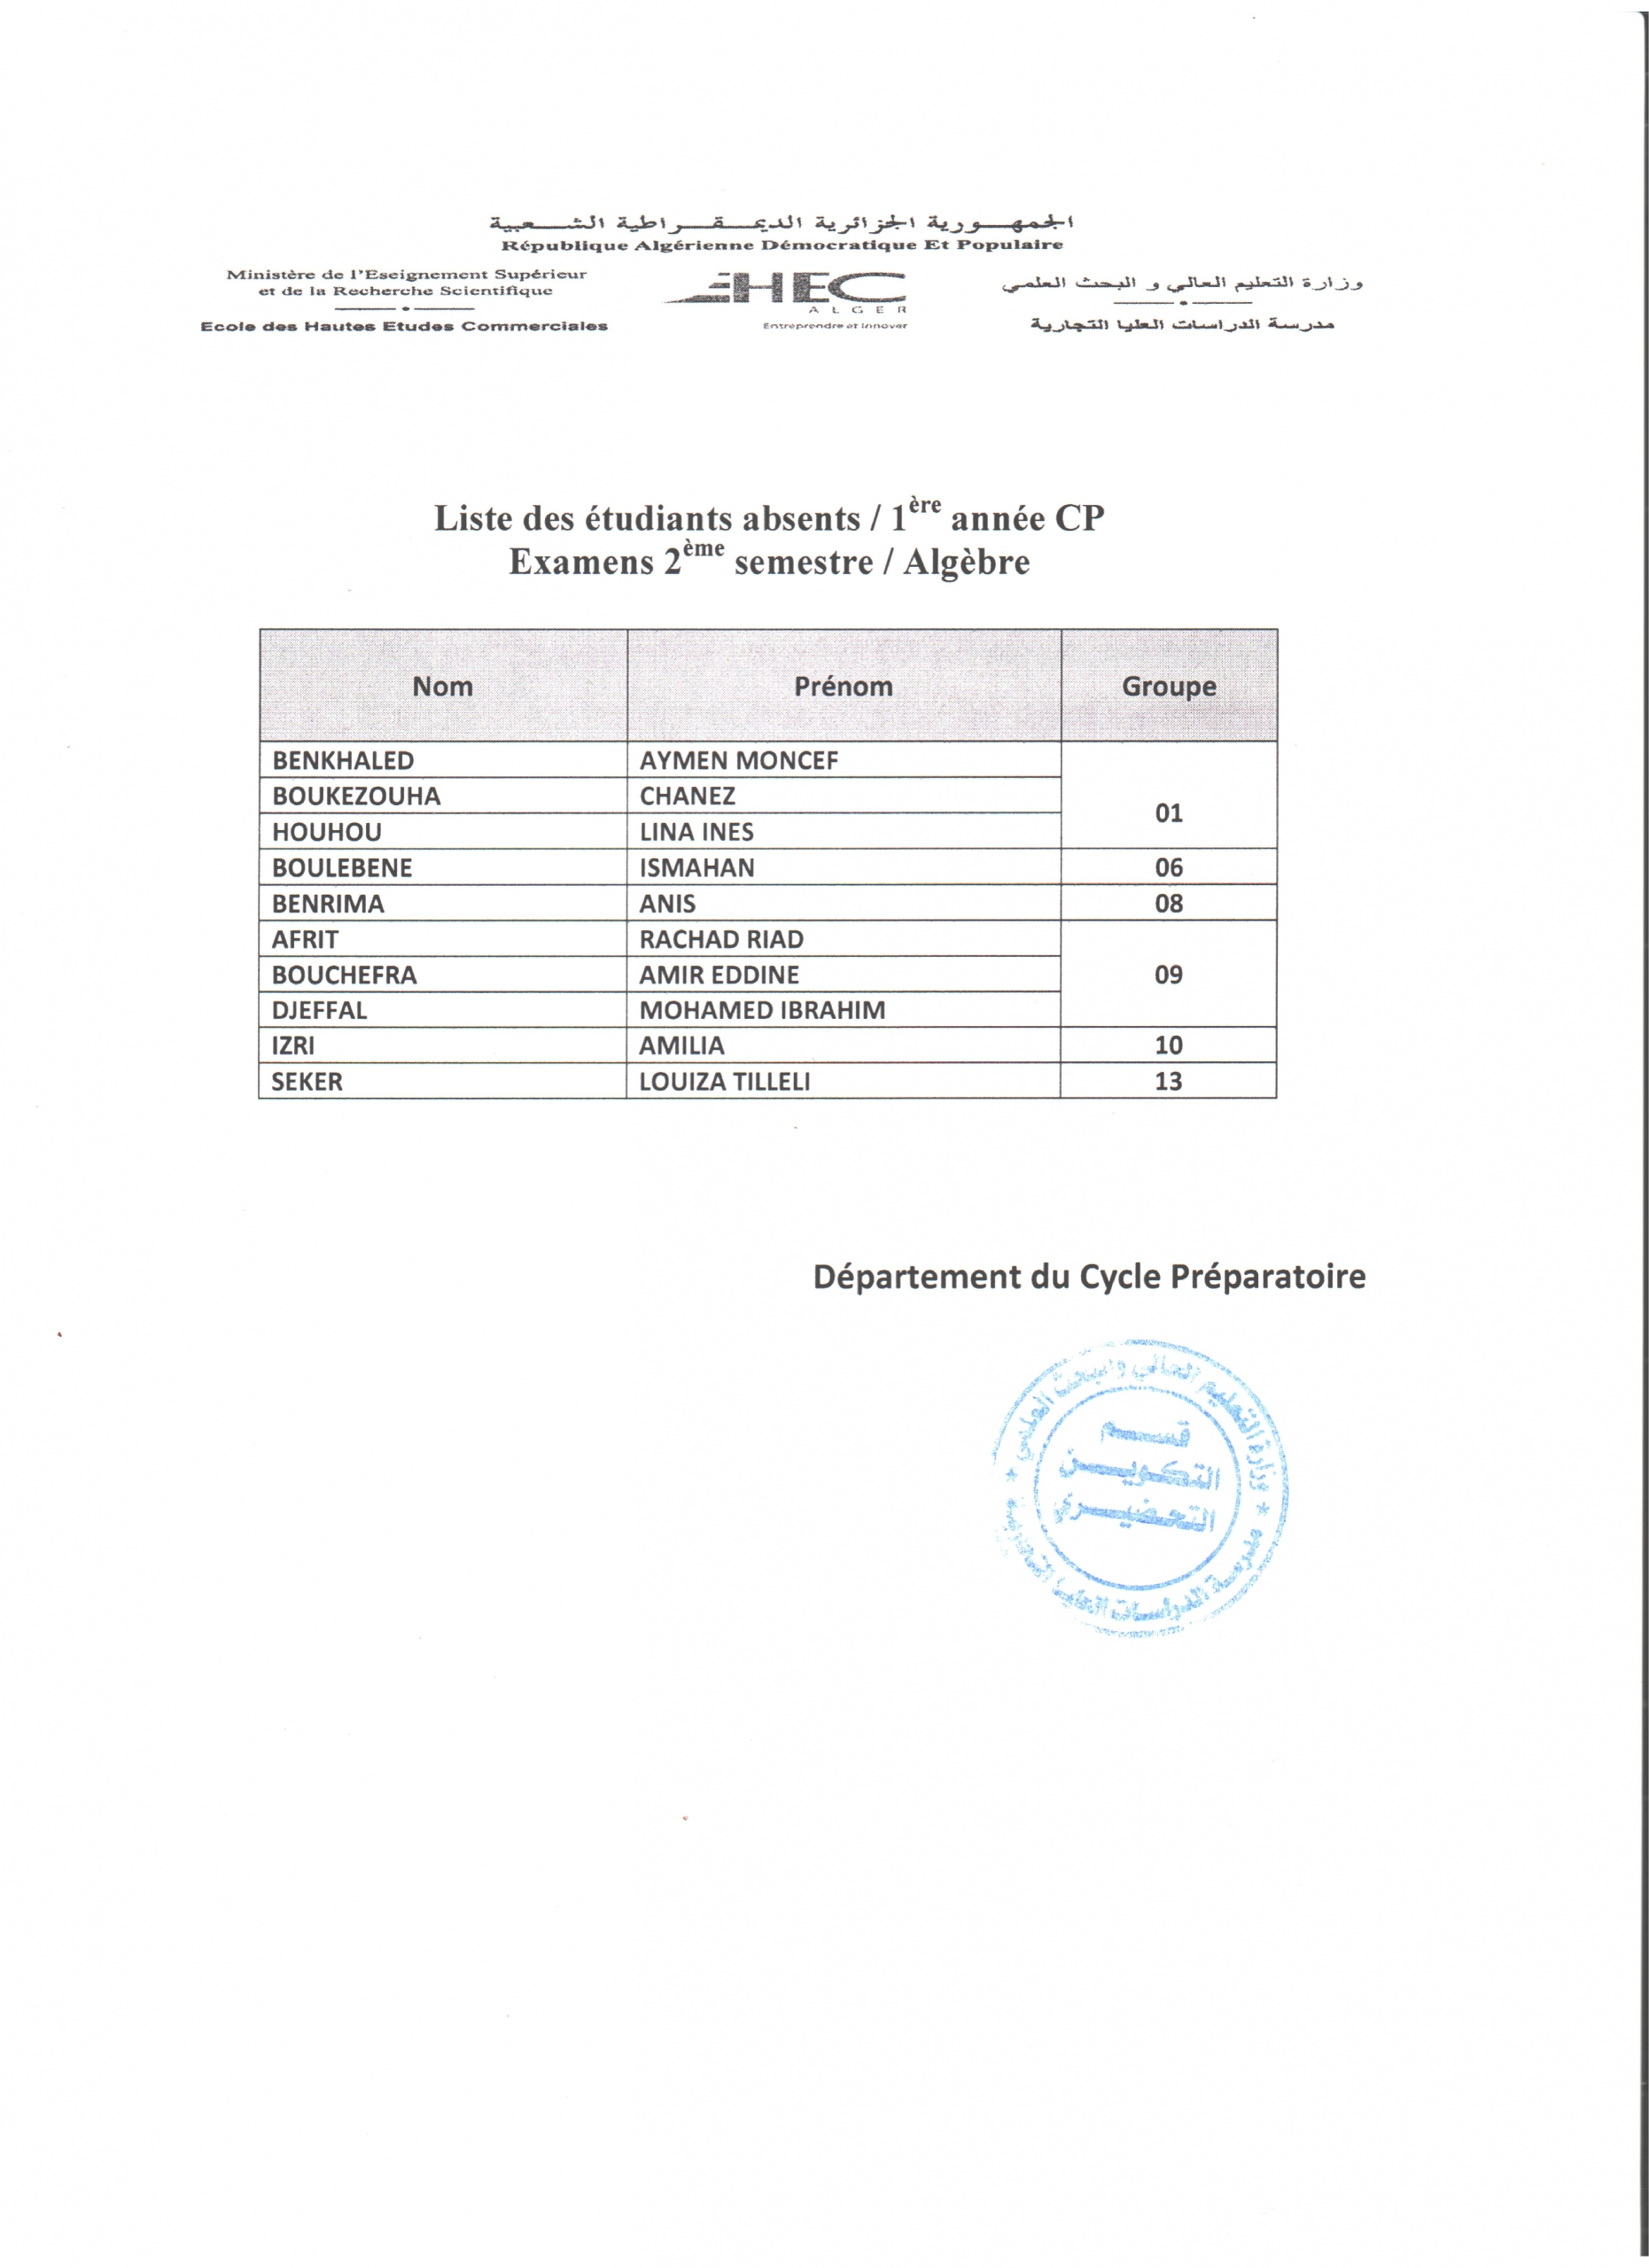 Replacement exam schedule, of 2nd semester, 1st year Prepratory Cycle..